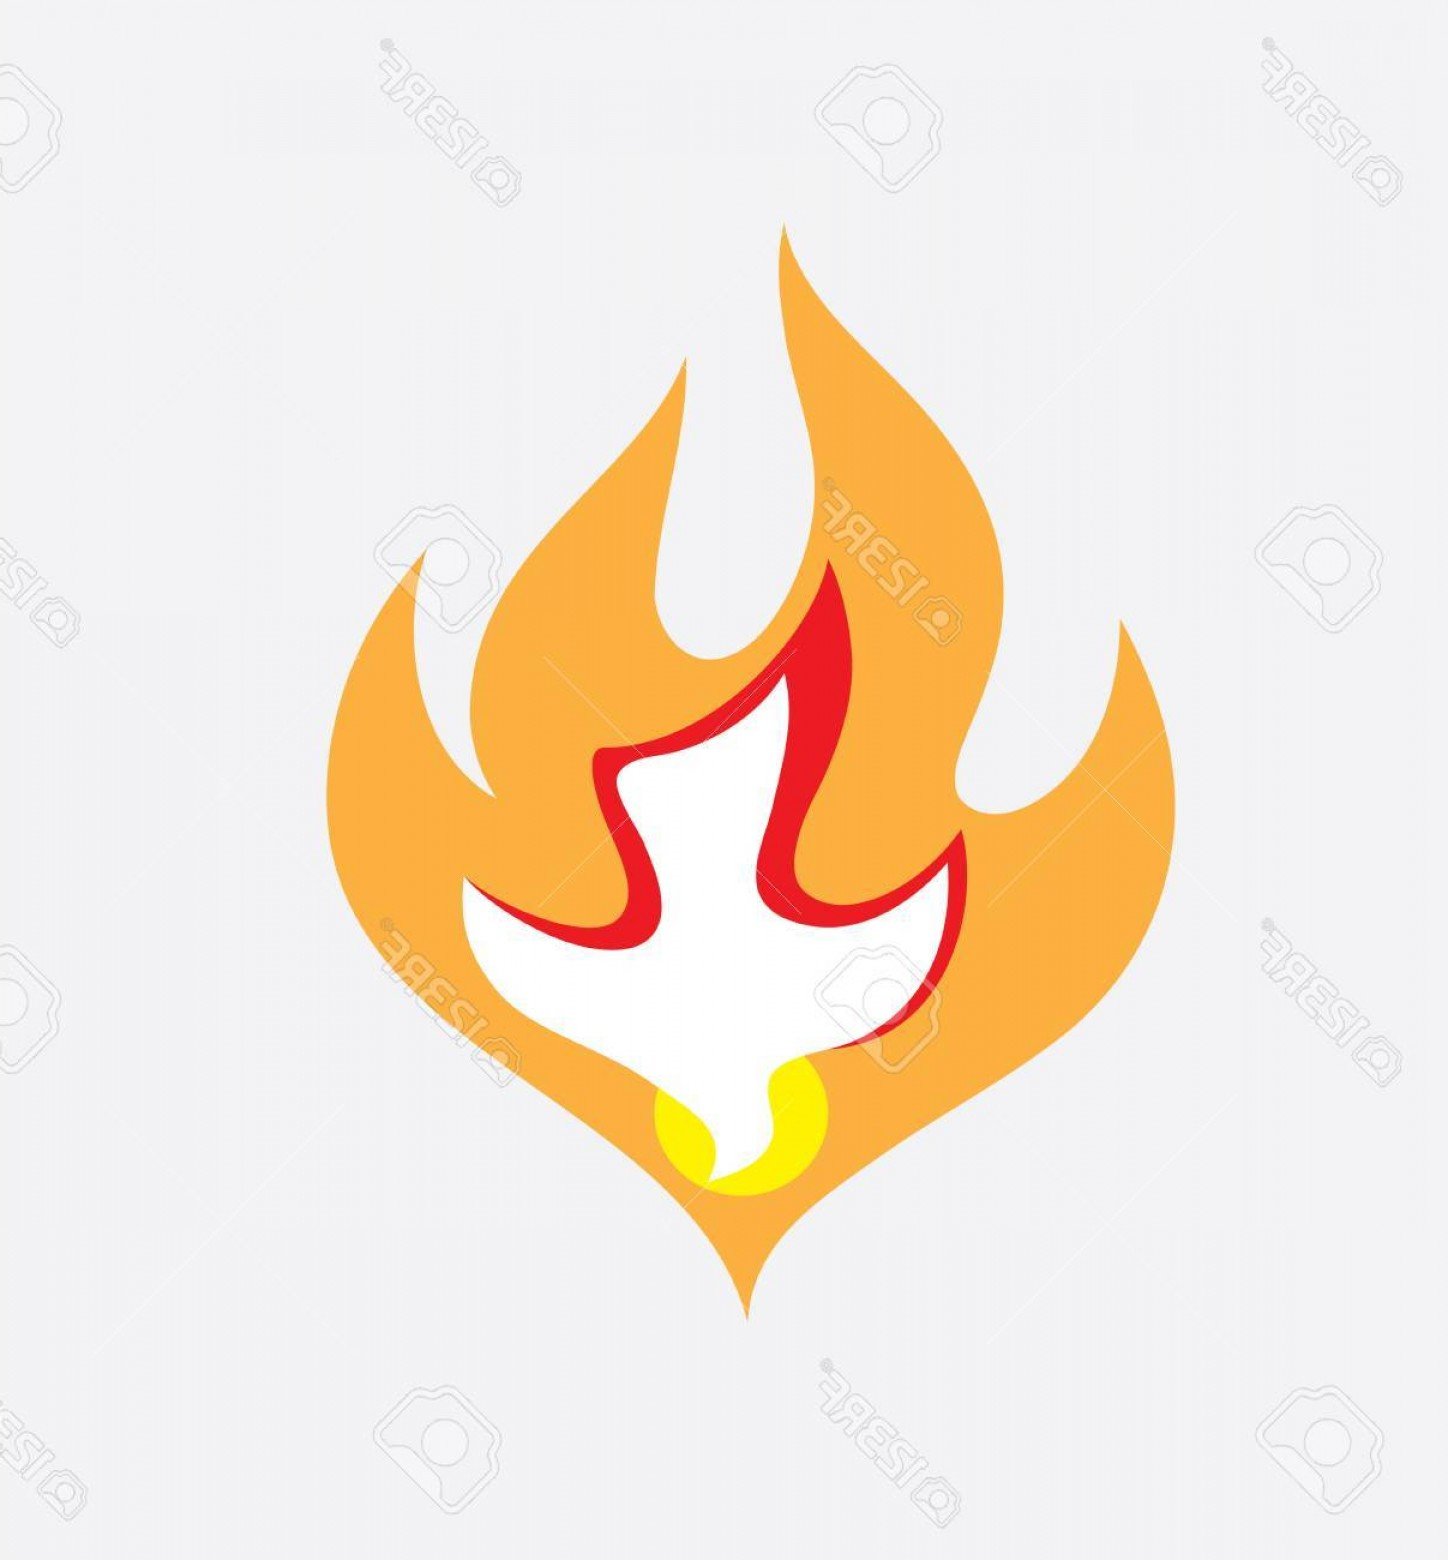 Fire Clip Art Vector: Photostock Vector Holy Spirit Fire Art Vector Design